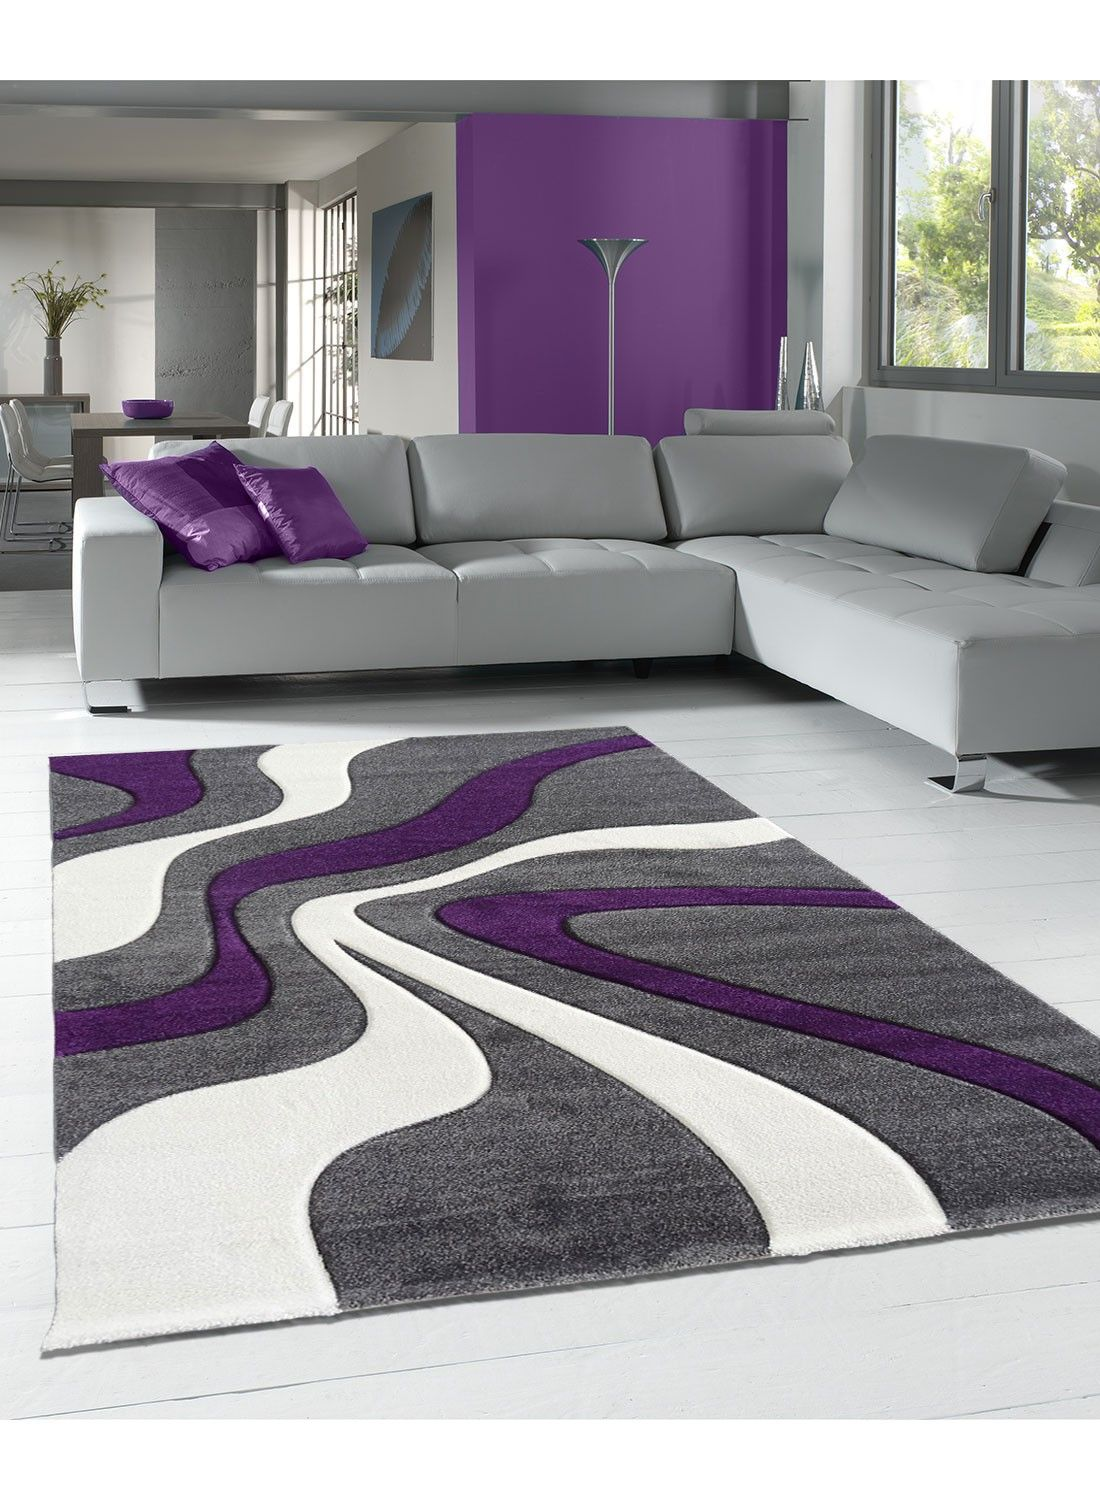 1000 images about tapis de salon on pinterest diamonds home and the ojays - Tapis Moderne Violet